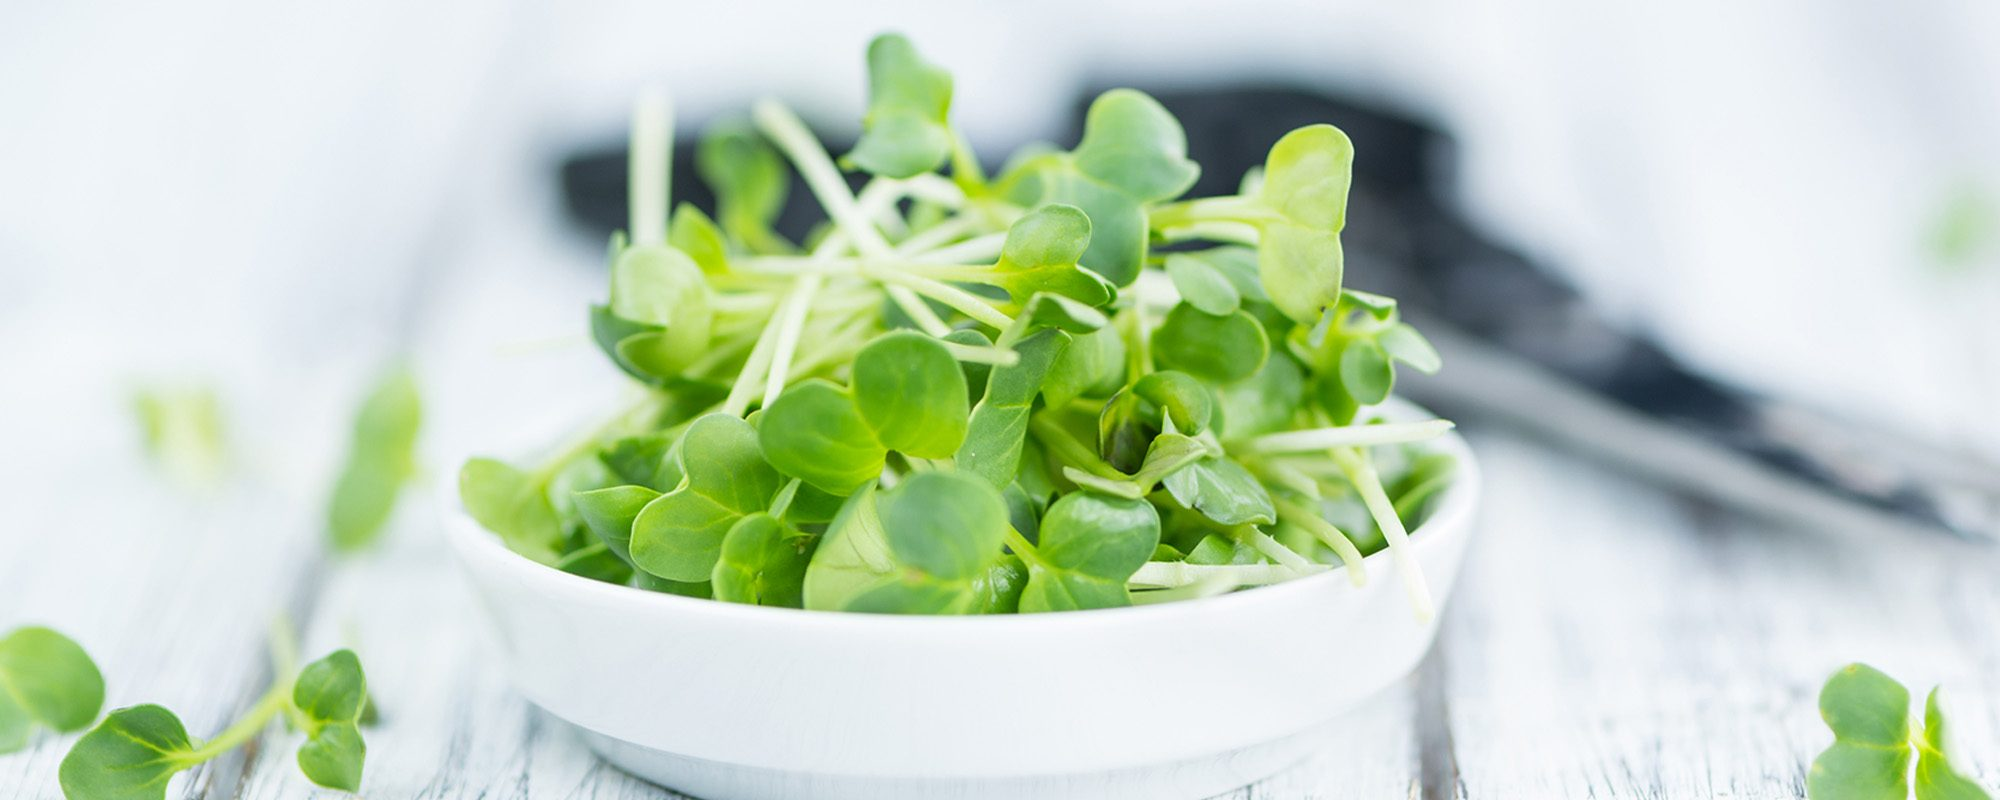 Cutted Cress on a vintage background as detailed close-up shot (selective focus)